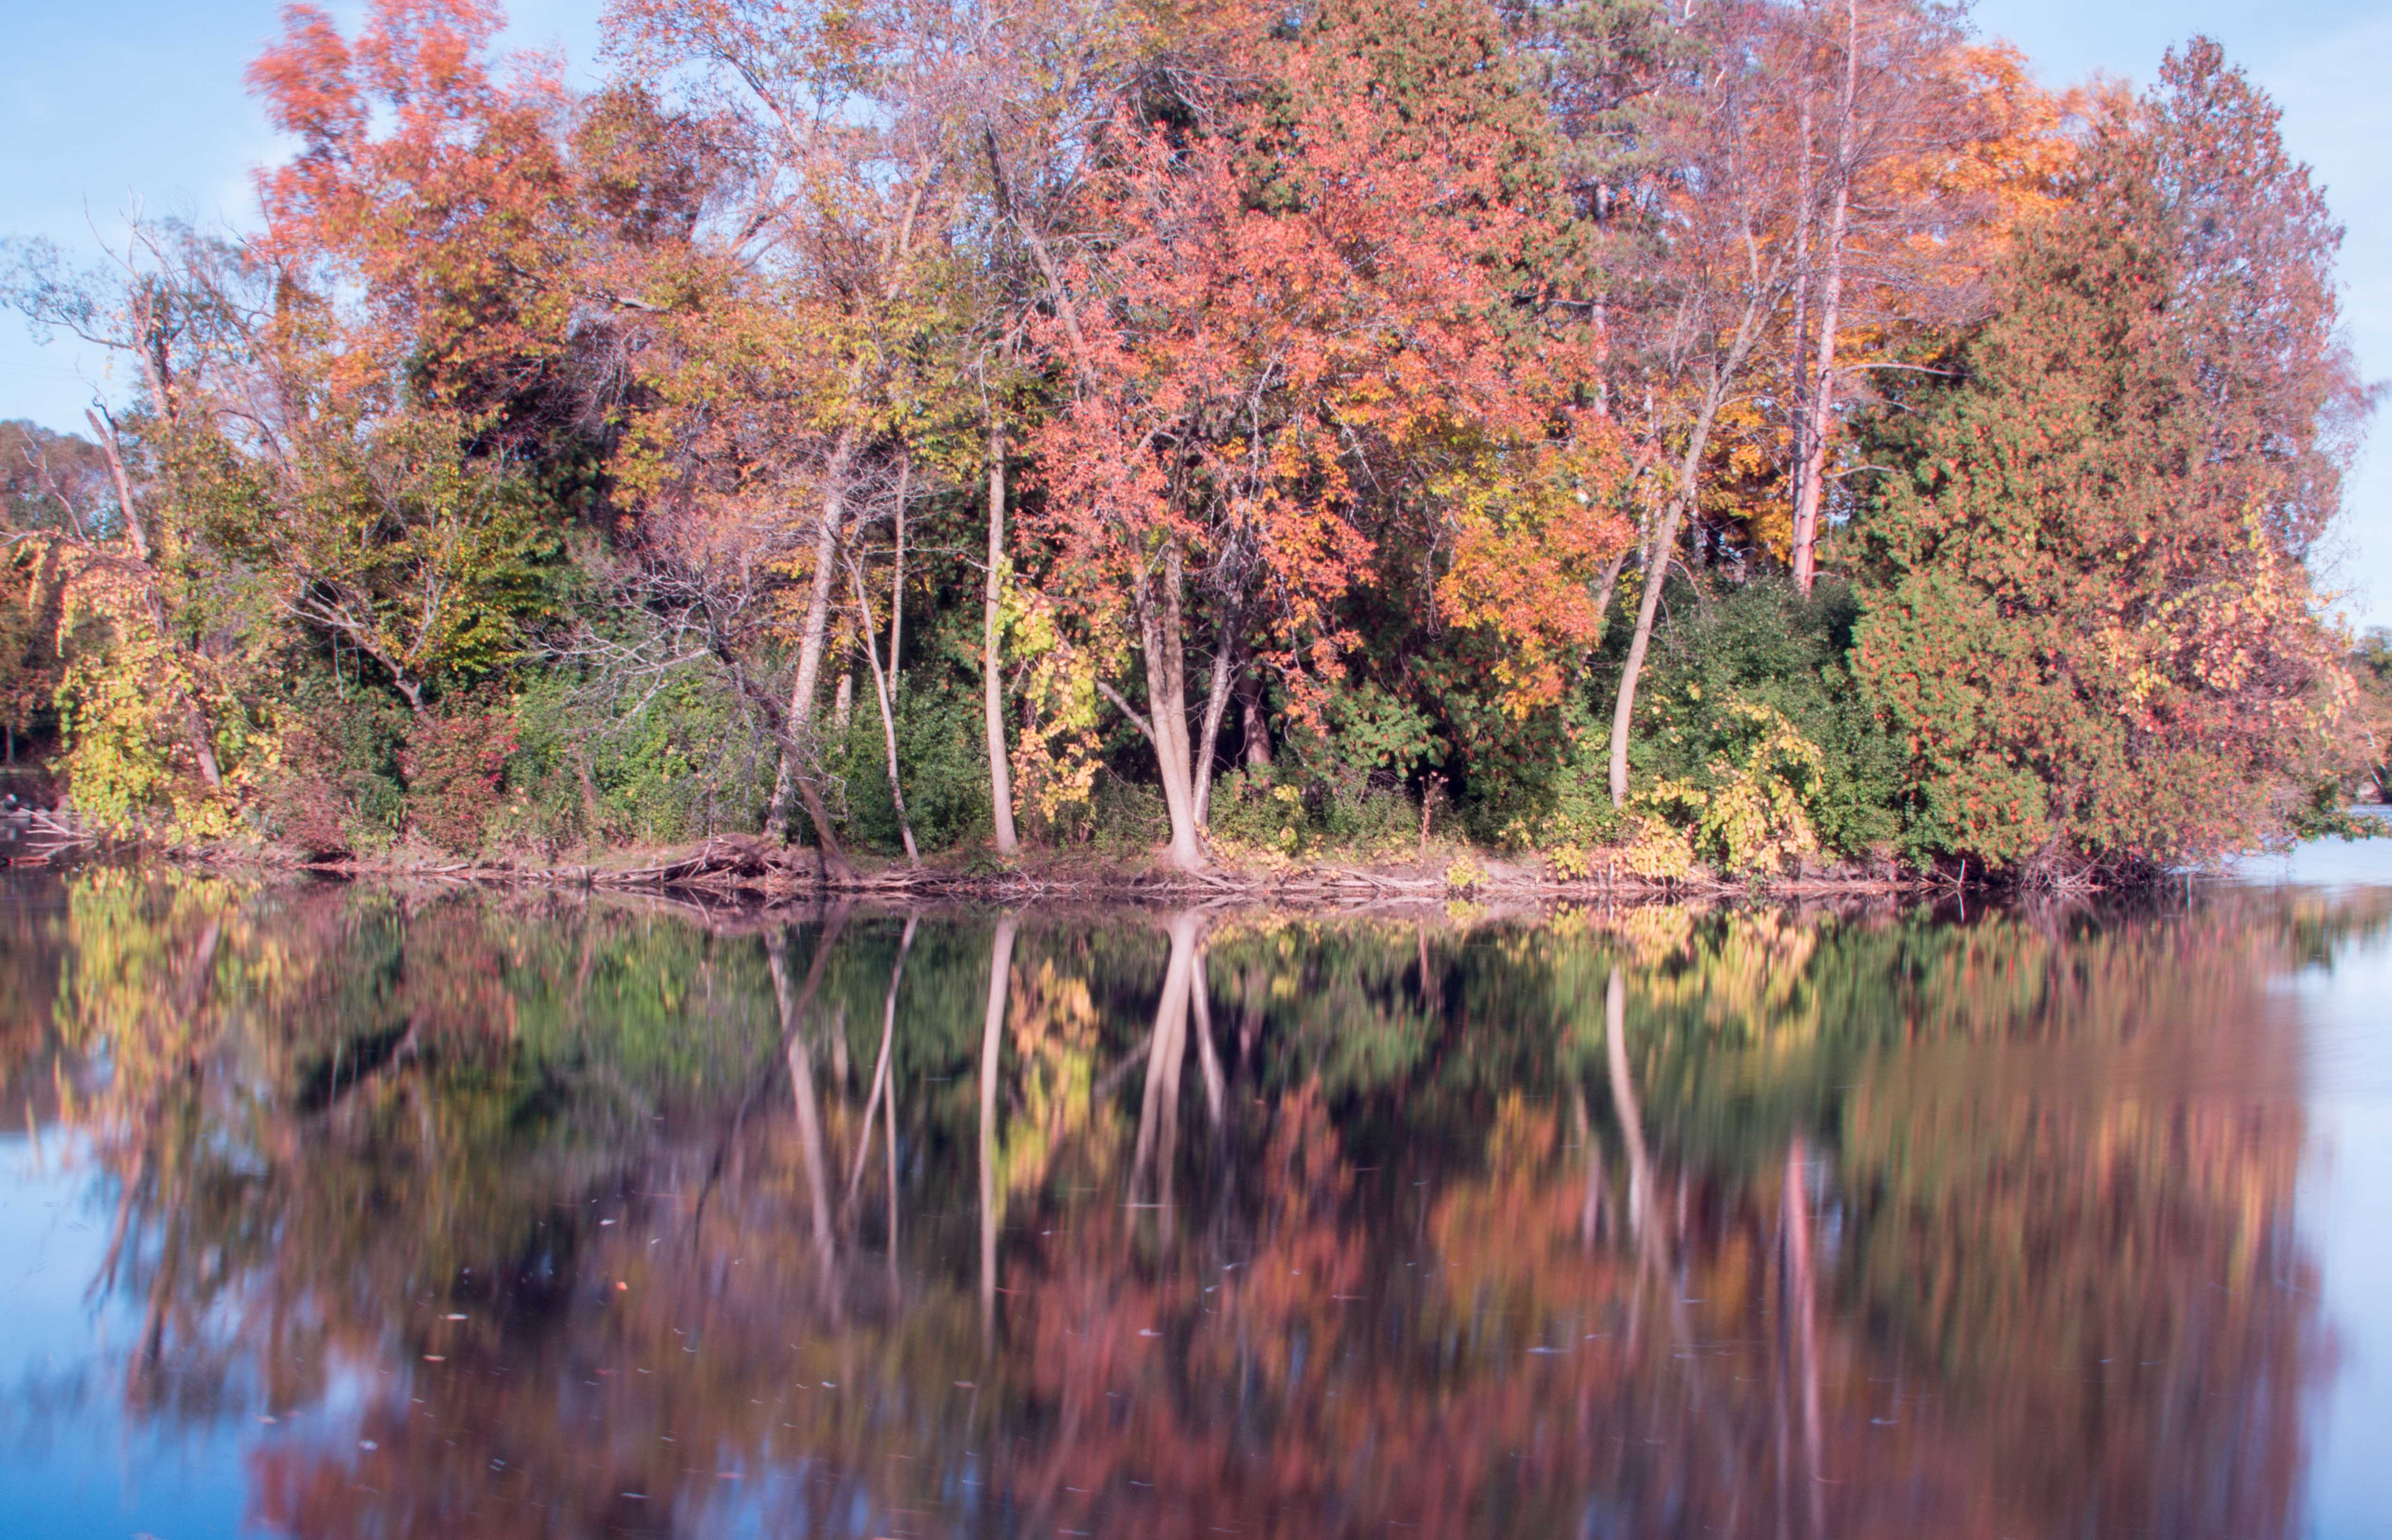 Greenfield Park October 2014 Fall Leaves Reflection Long Exposure | https://www.roseclearfield.com